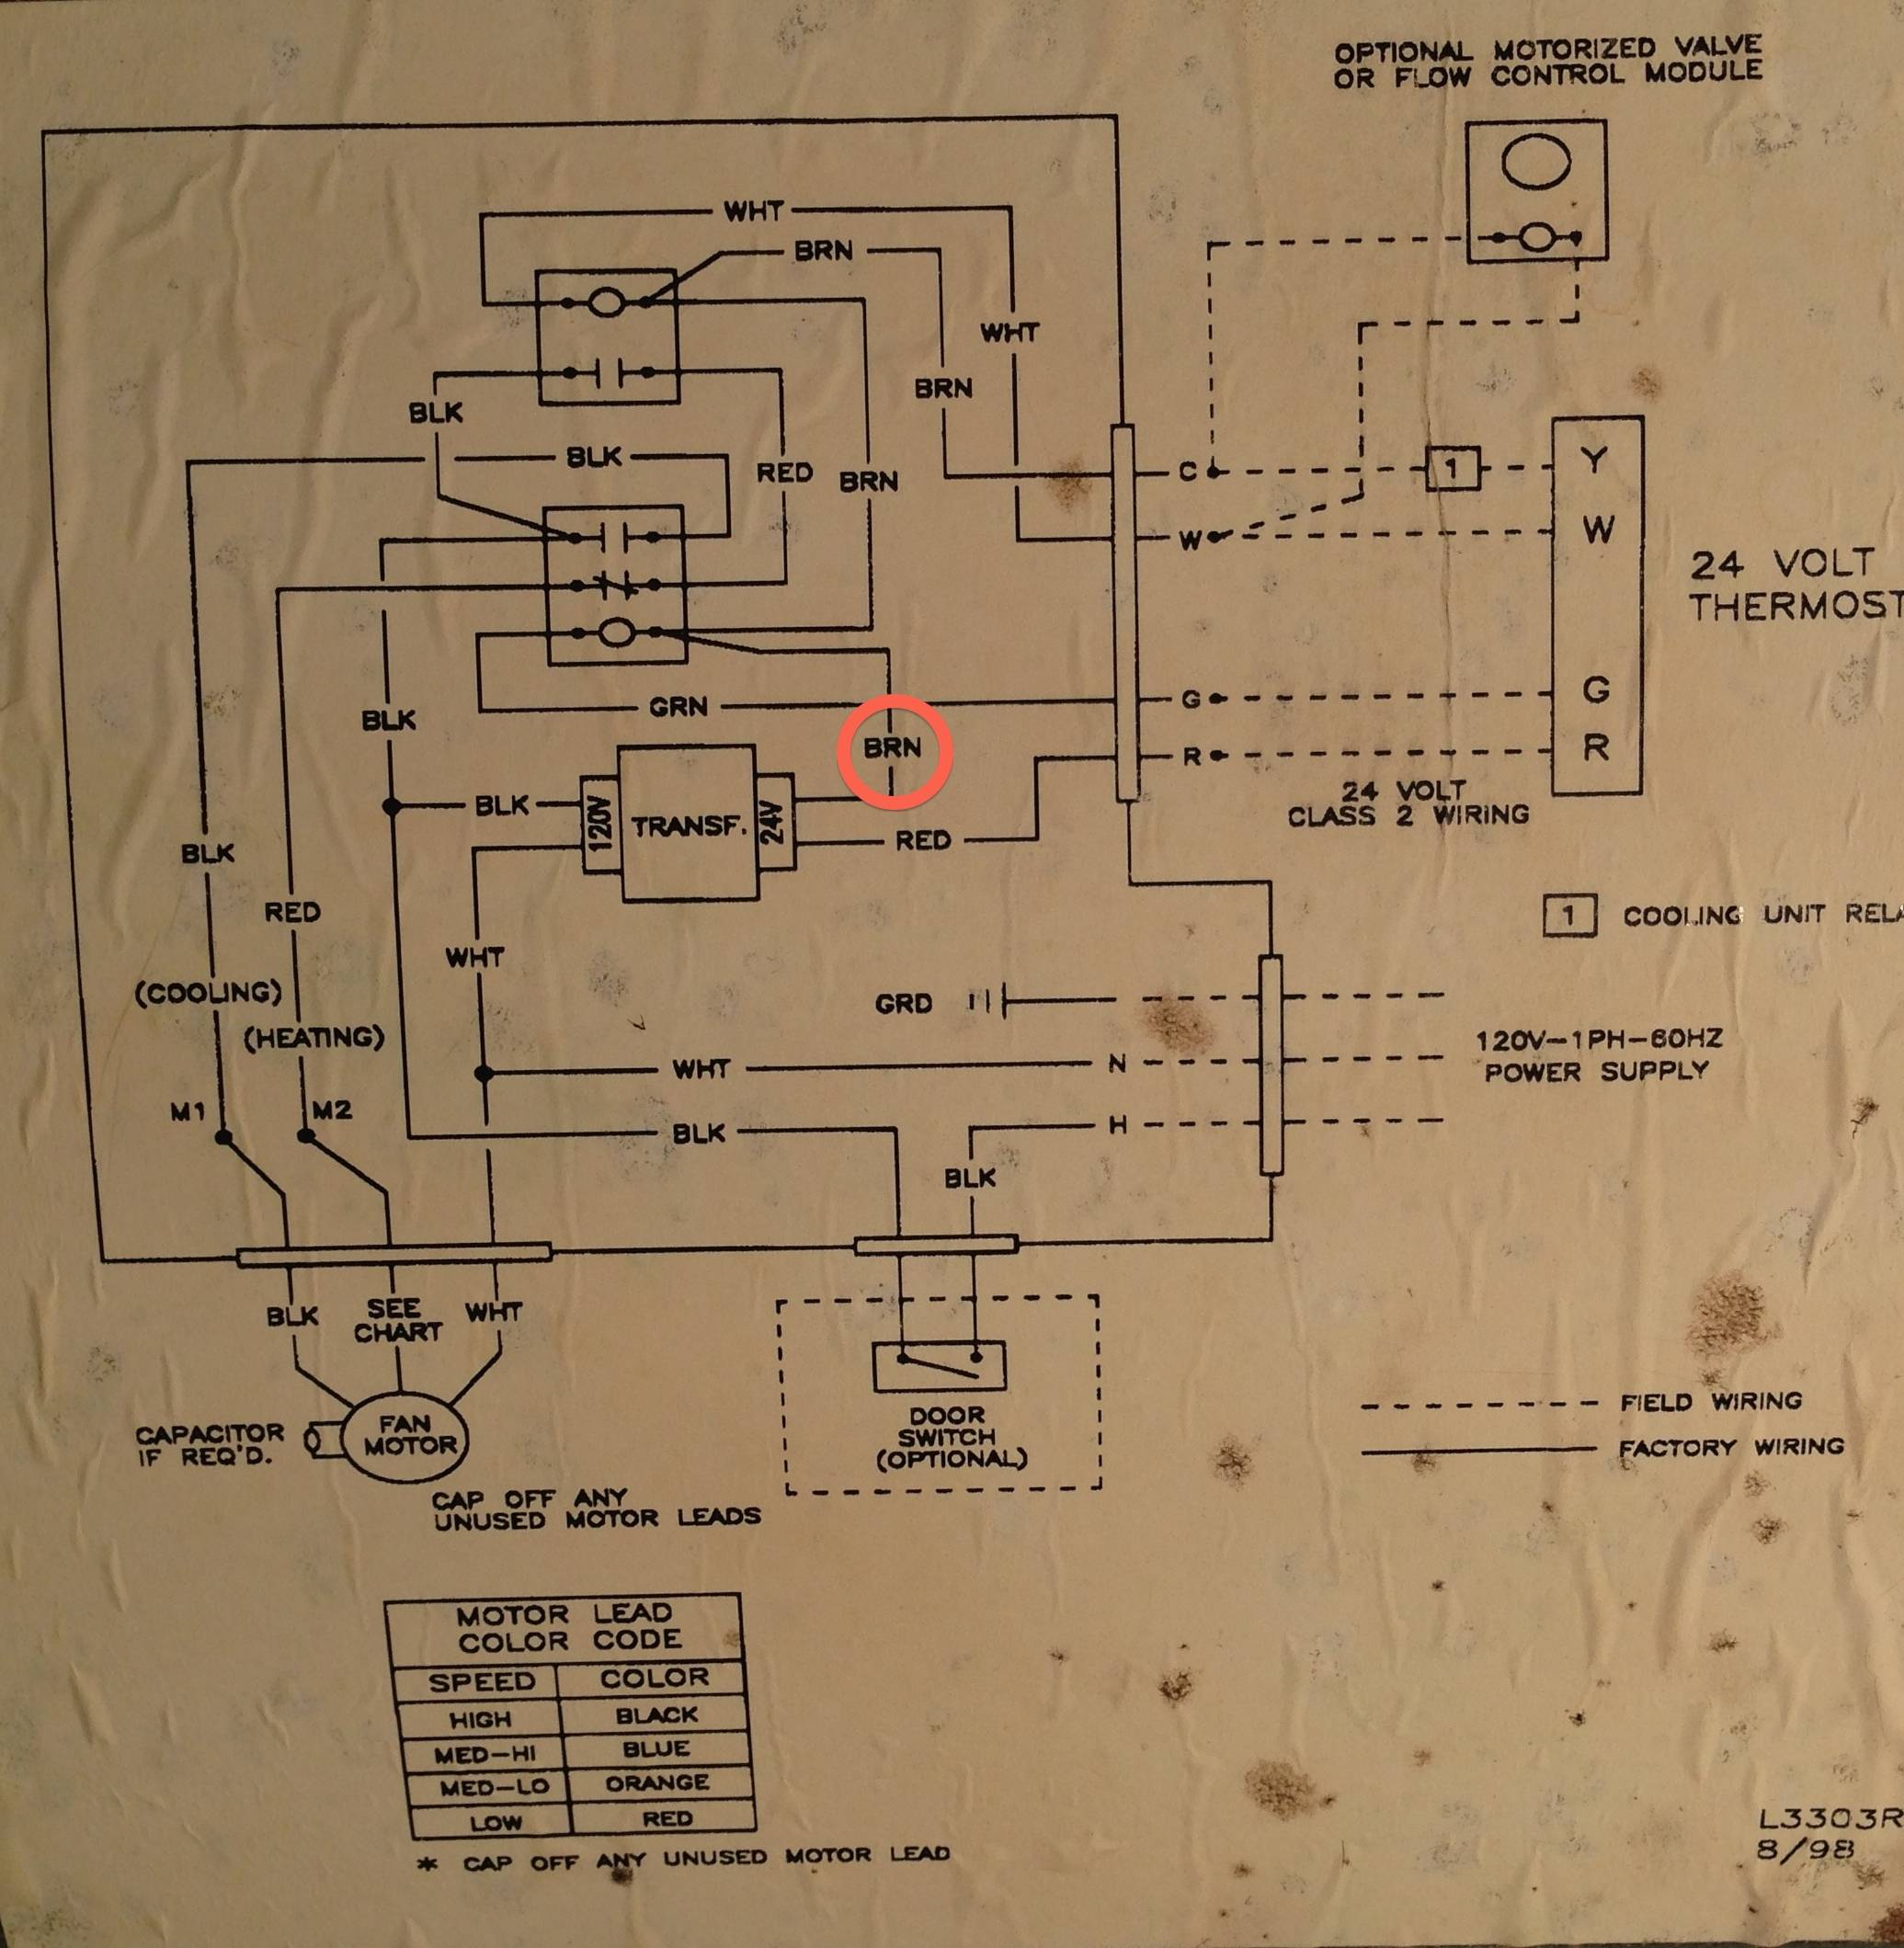 Hot Water Heater Wiring Diagram How To Wire Water Heater Thermostat